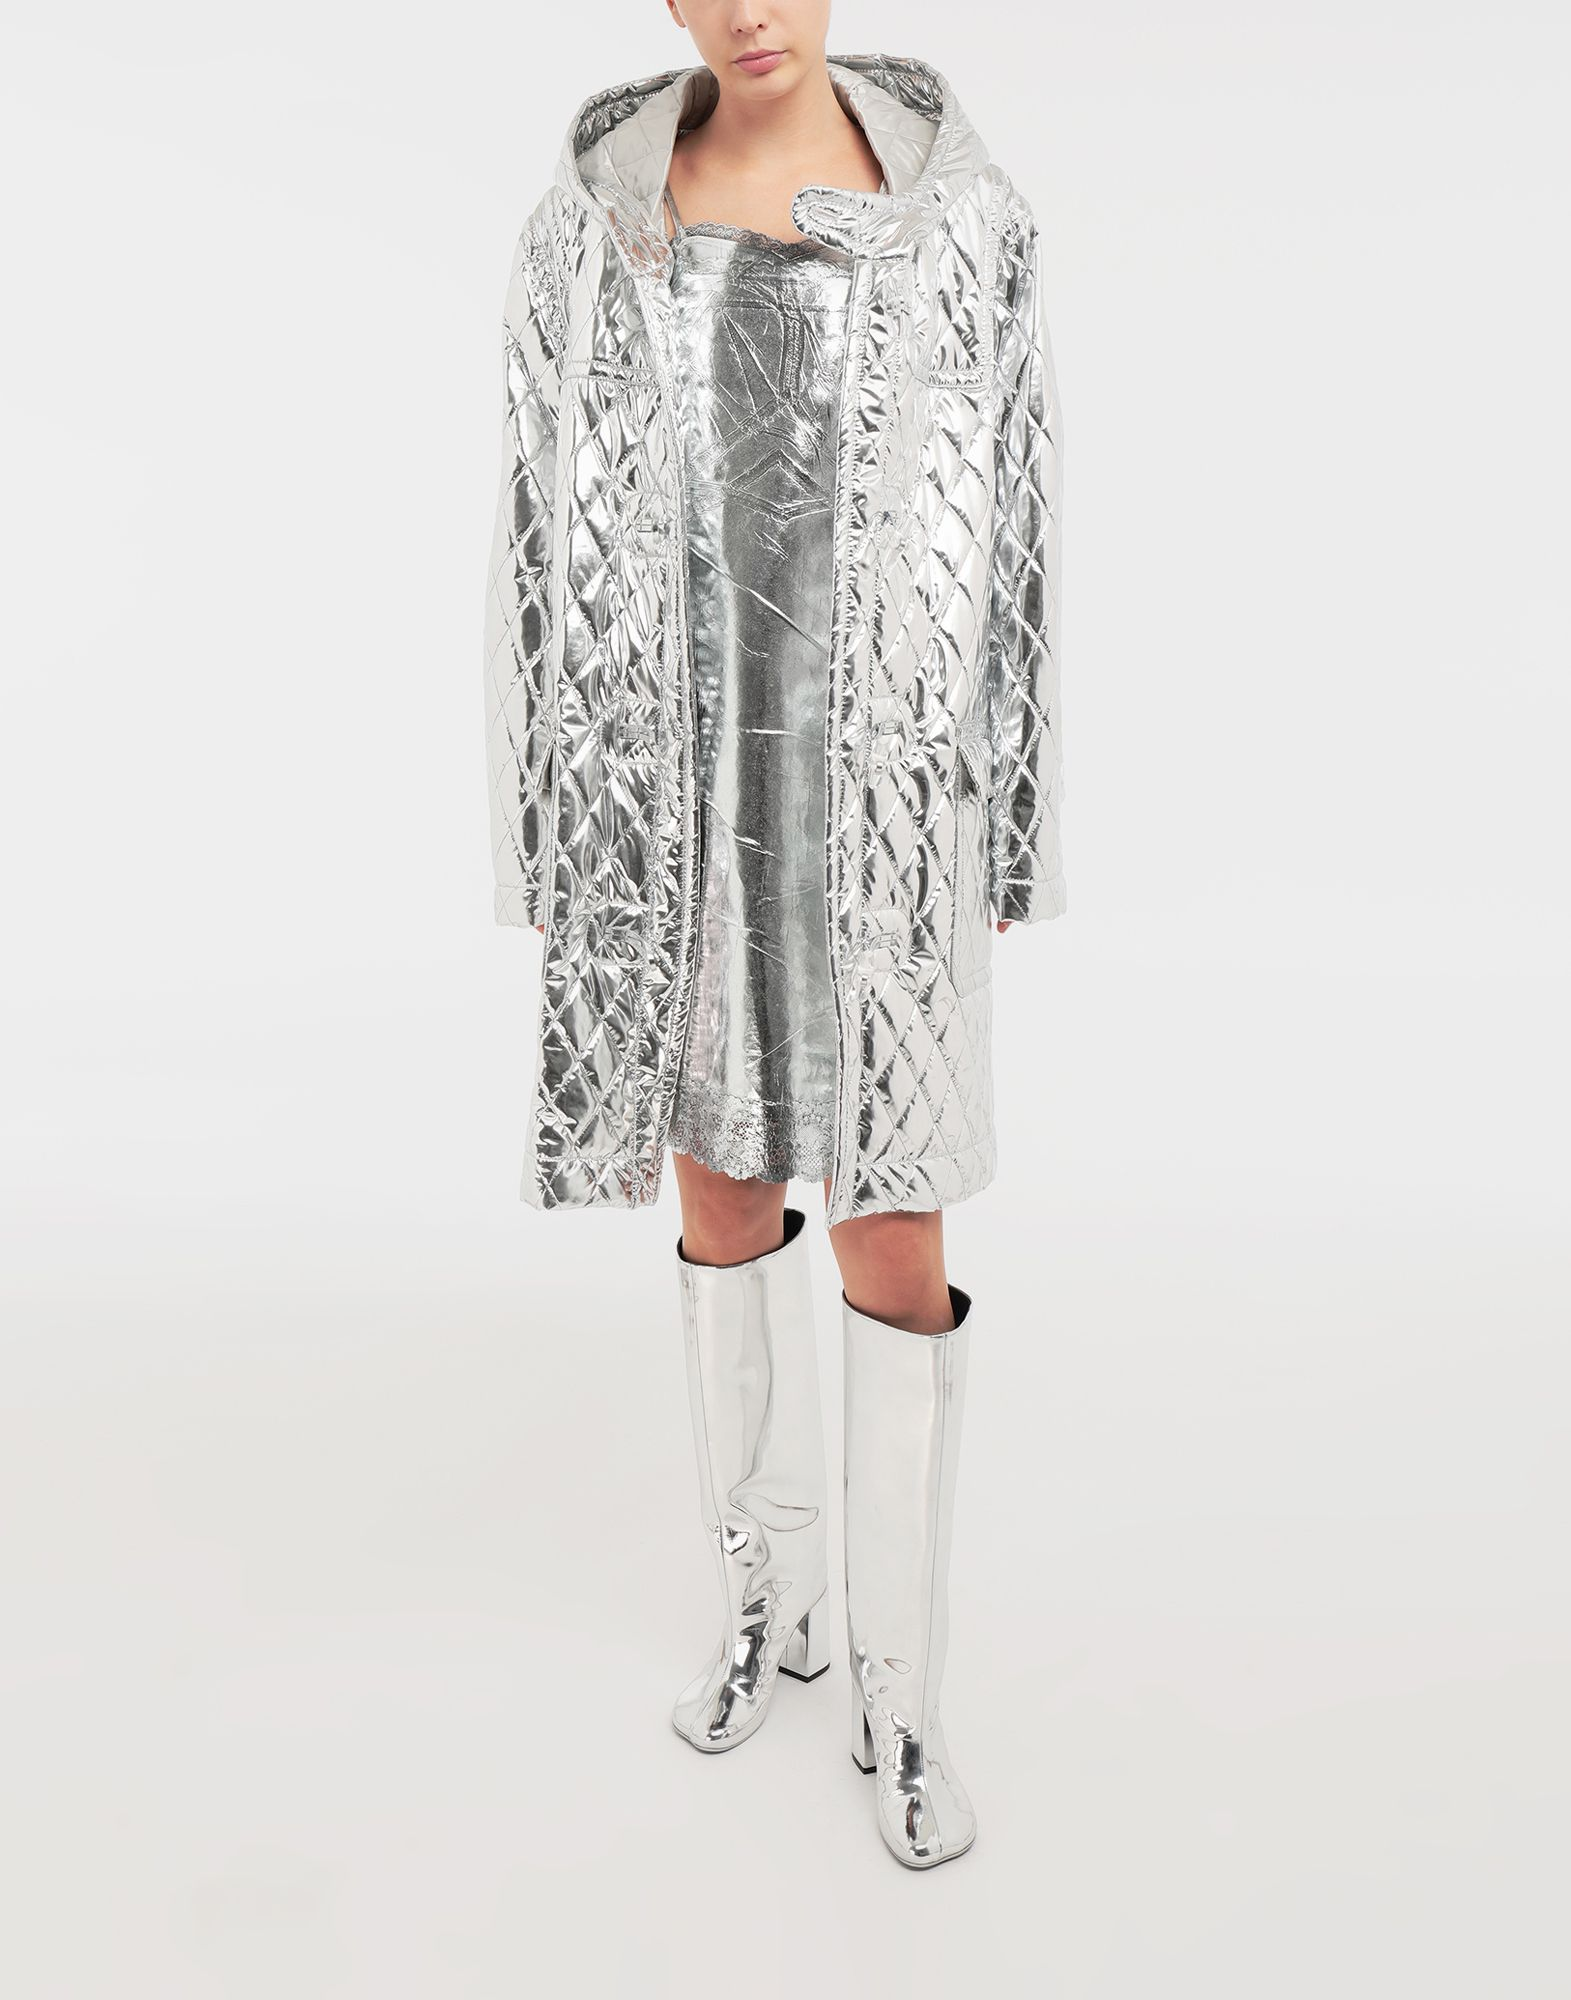 MM6 MAISON MARGIELA Silver midi strapped dress Short dress Woman d